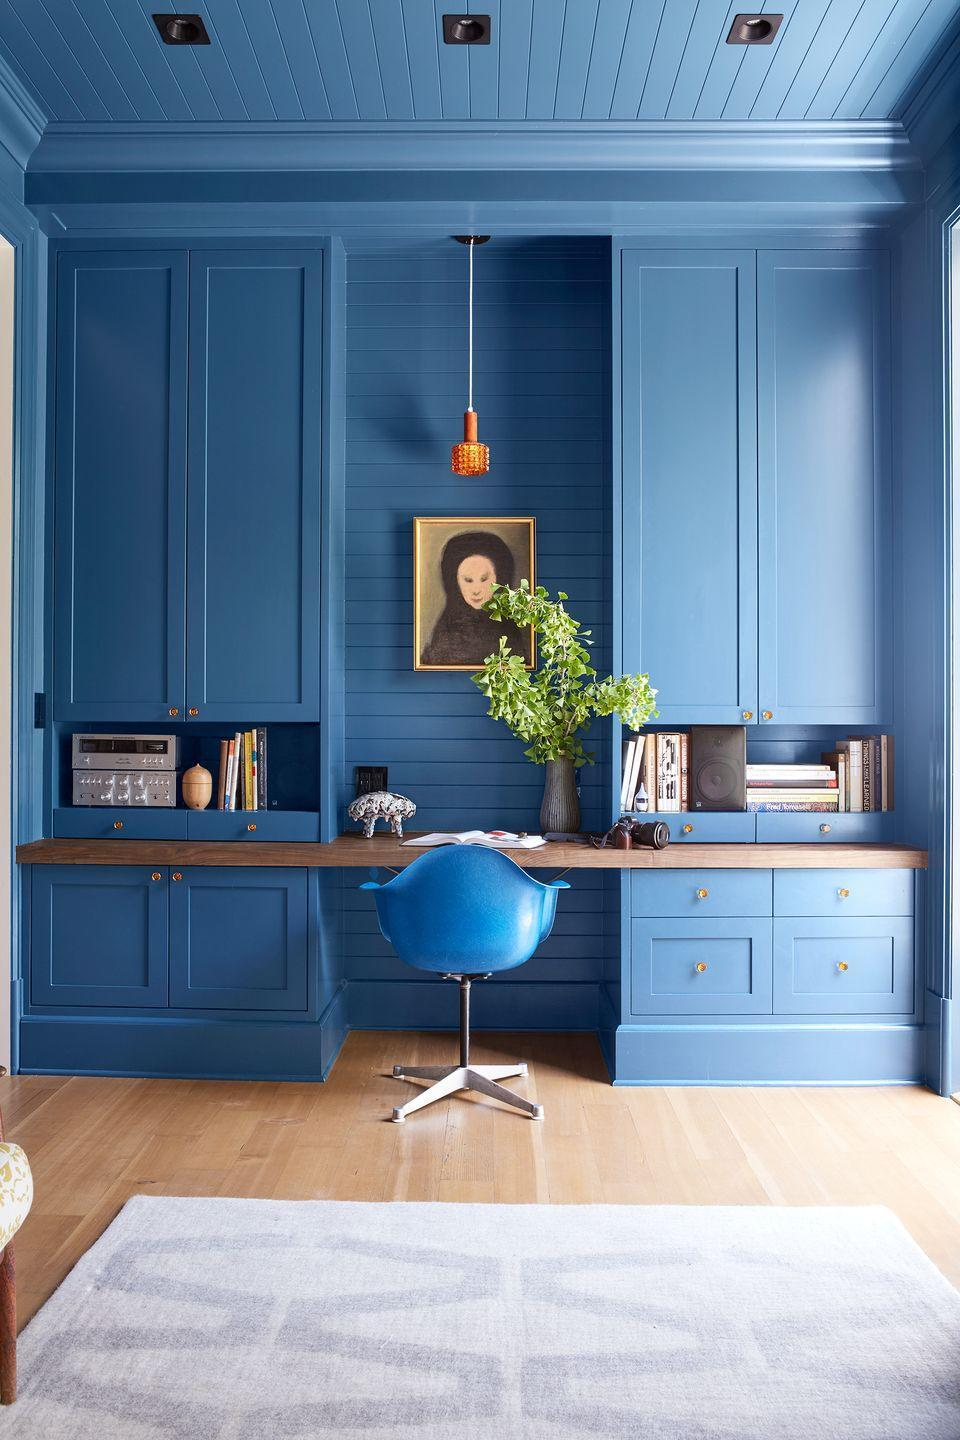 <p>Make your home office feel comforting and inspiring to you, whatever that may mean. Here, that meant sticking to a blue color scheme. If you have a favorite color, why not run with it? A bold paint color introduces your personality without taking up any useable floor space, too. </p>